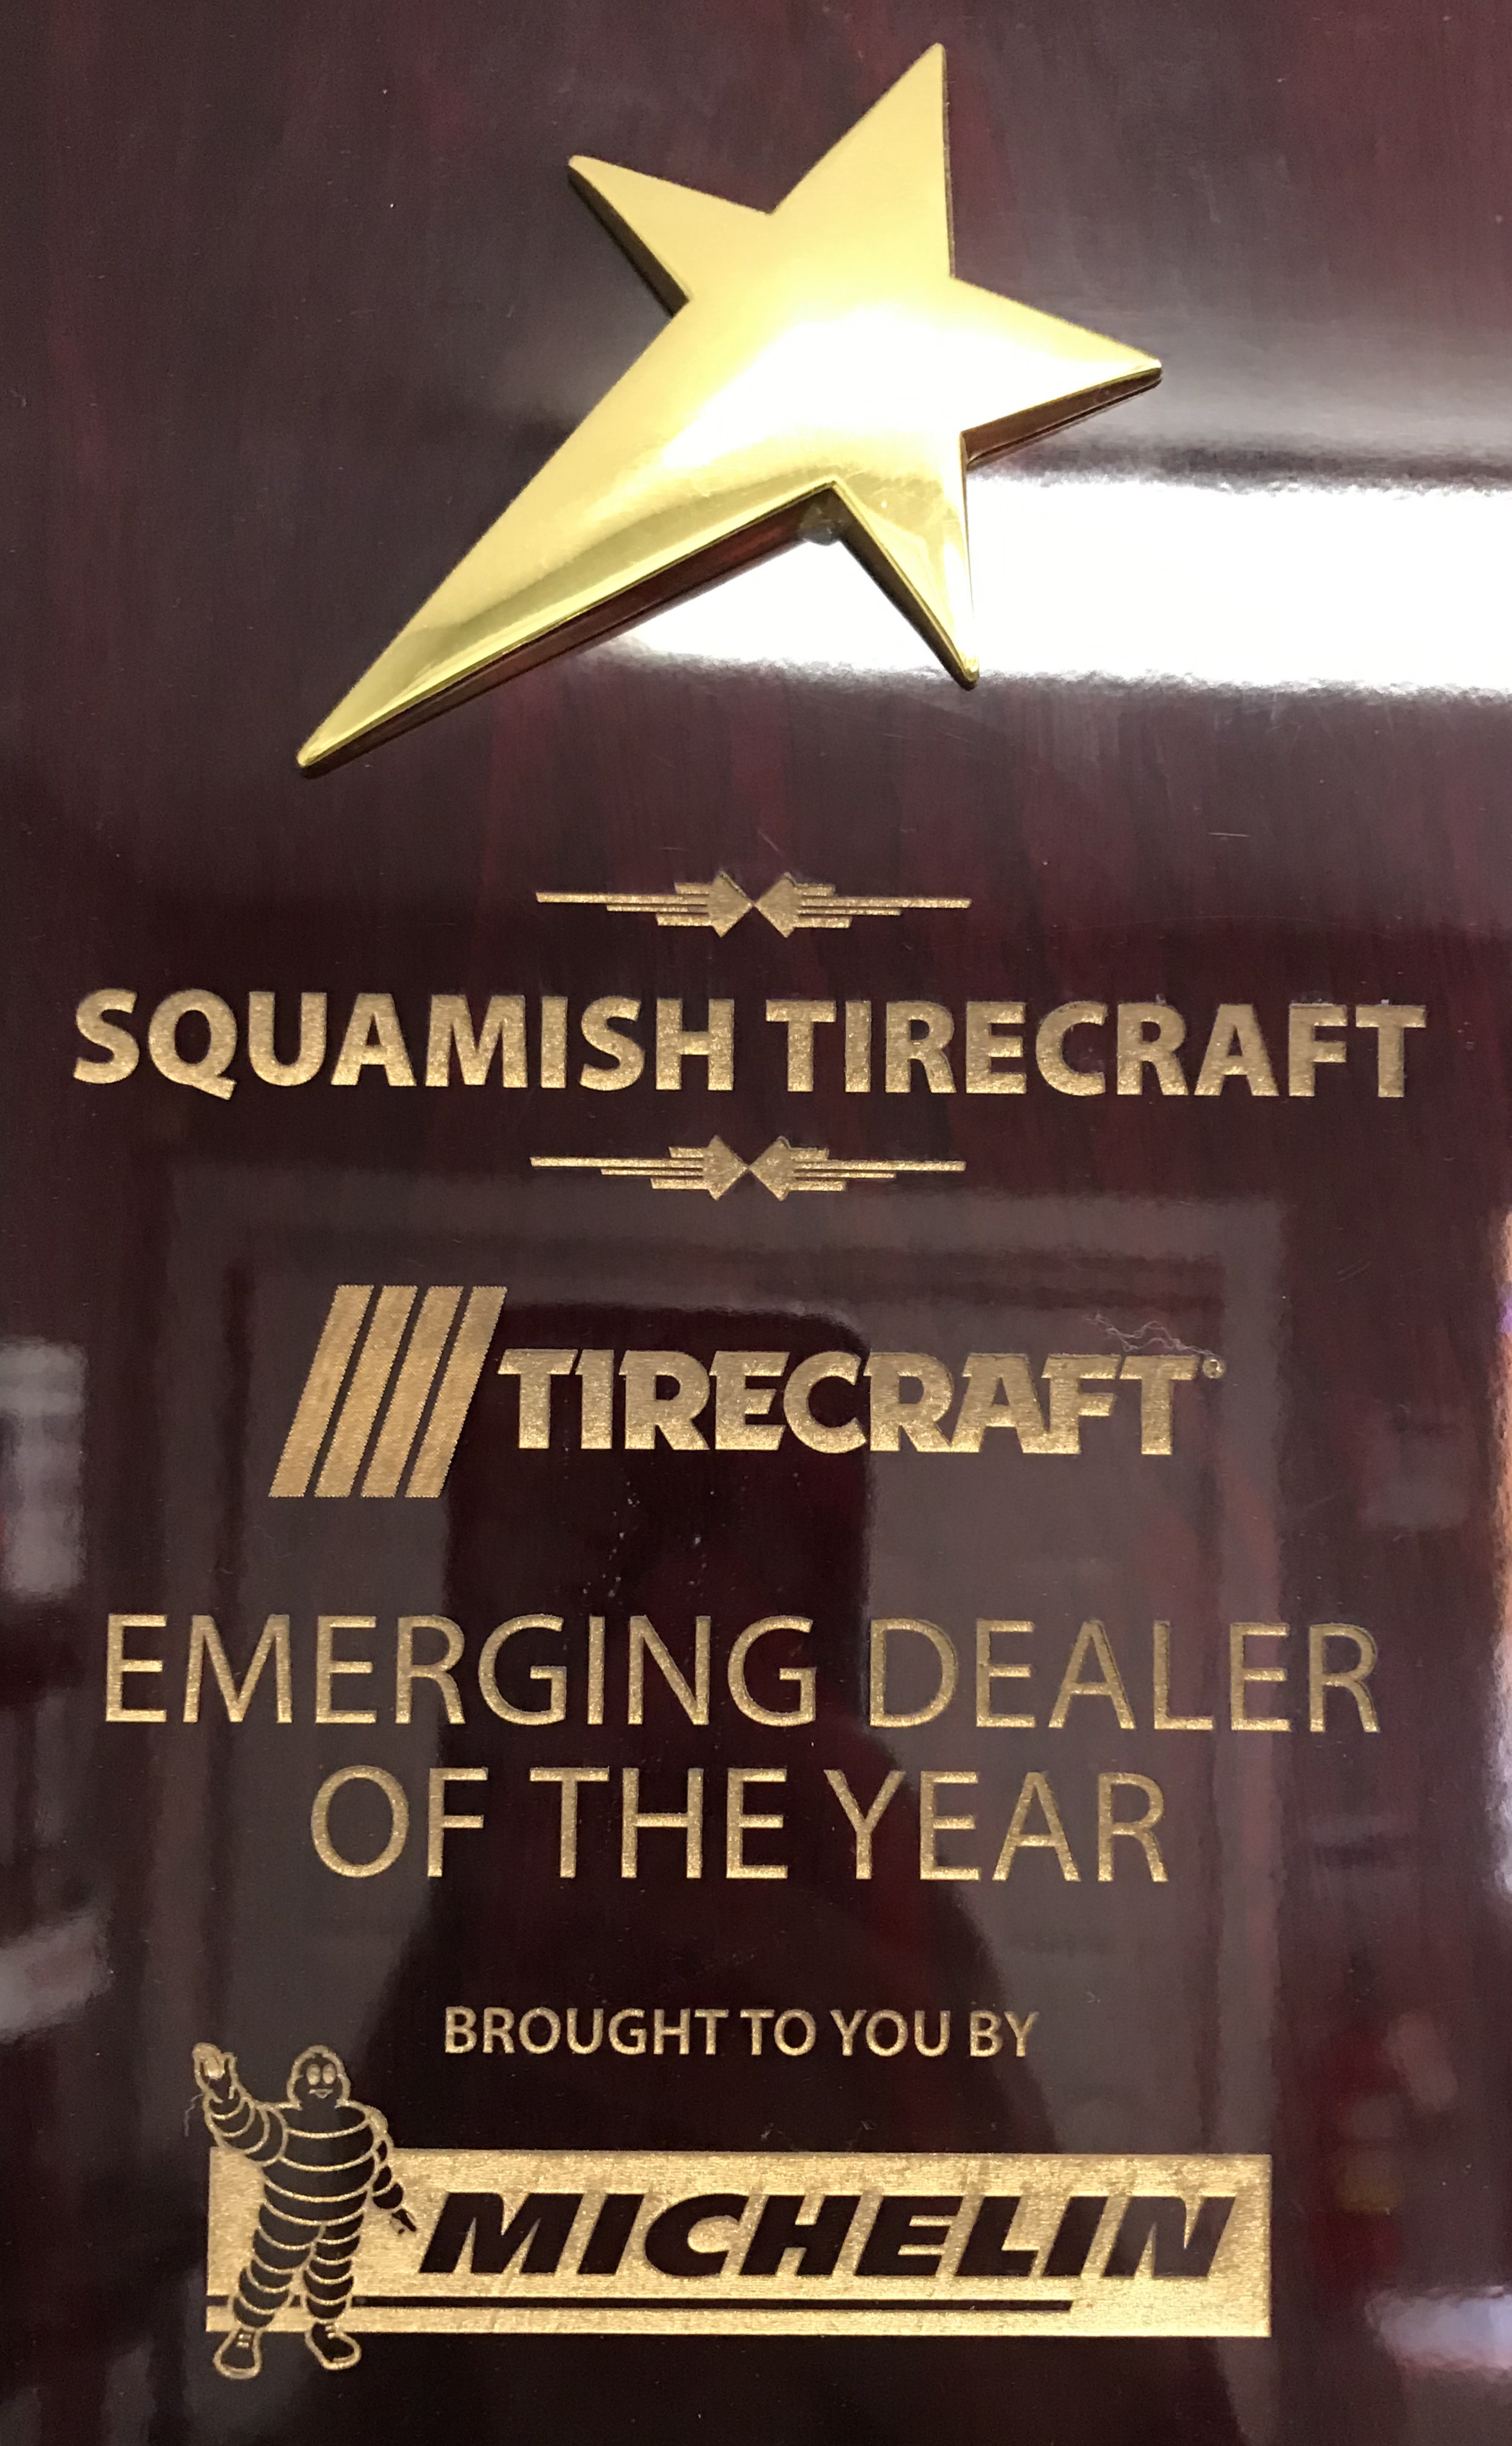 Dealer of the Year - Good 2 Go Tirecraft Auto Centre